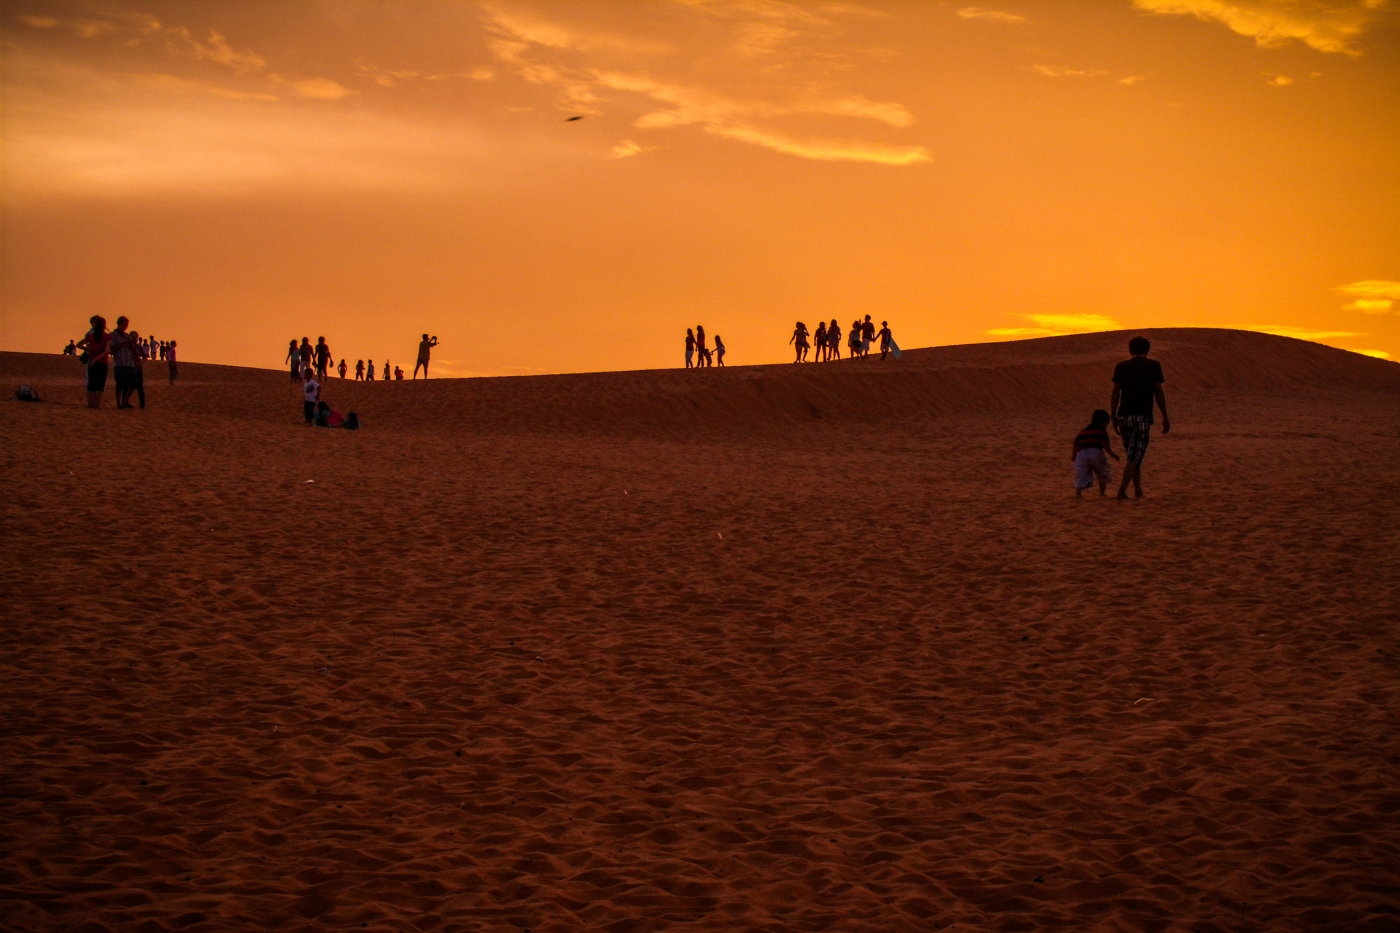 Scooters and sand dunes in Mui Ne